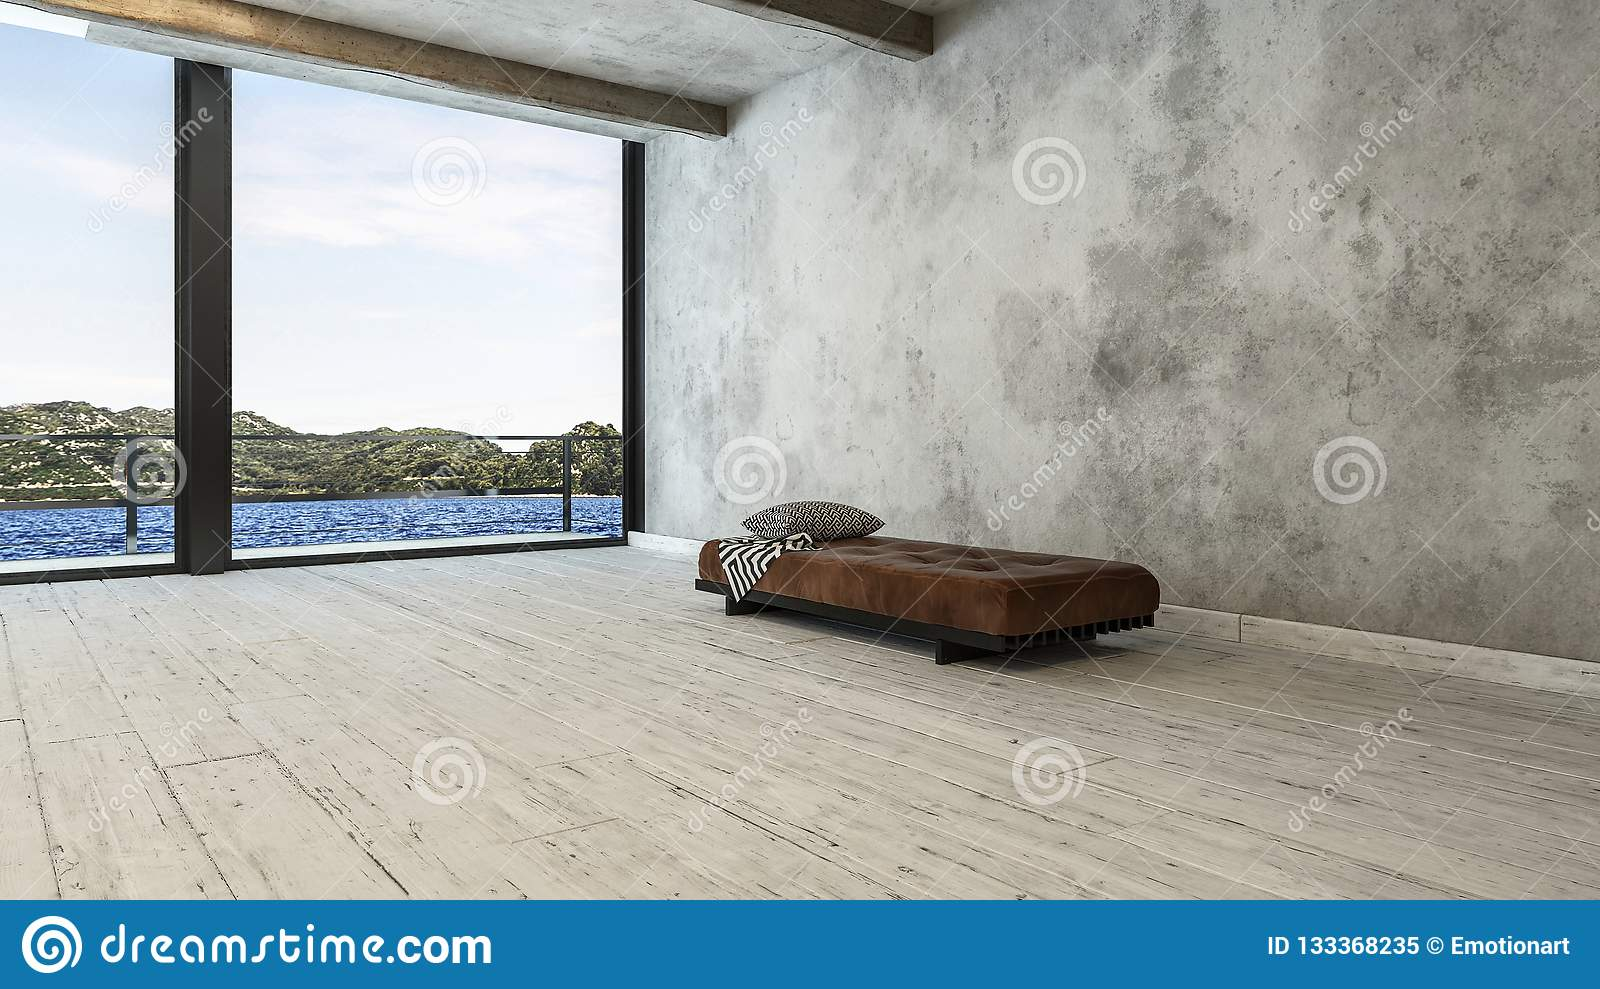 Minimalist penthouse room with bench sofa and view